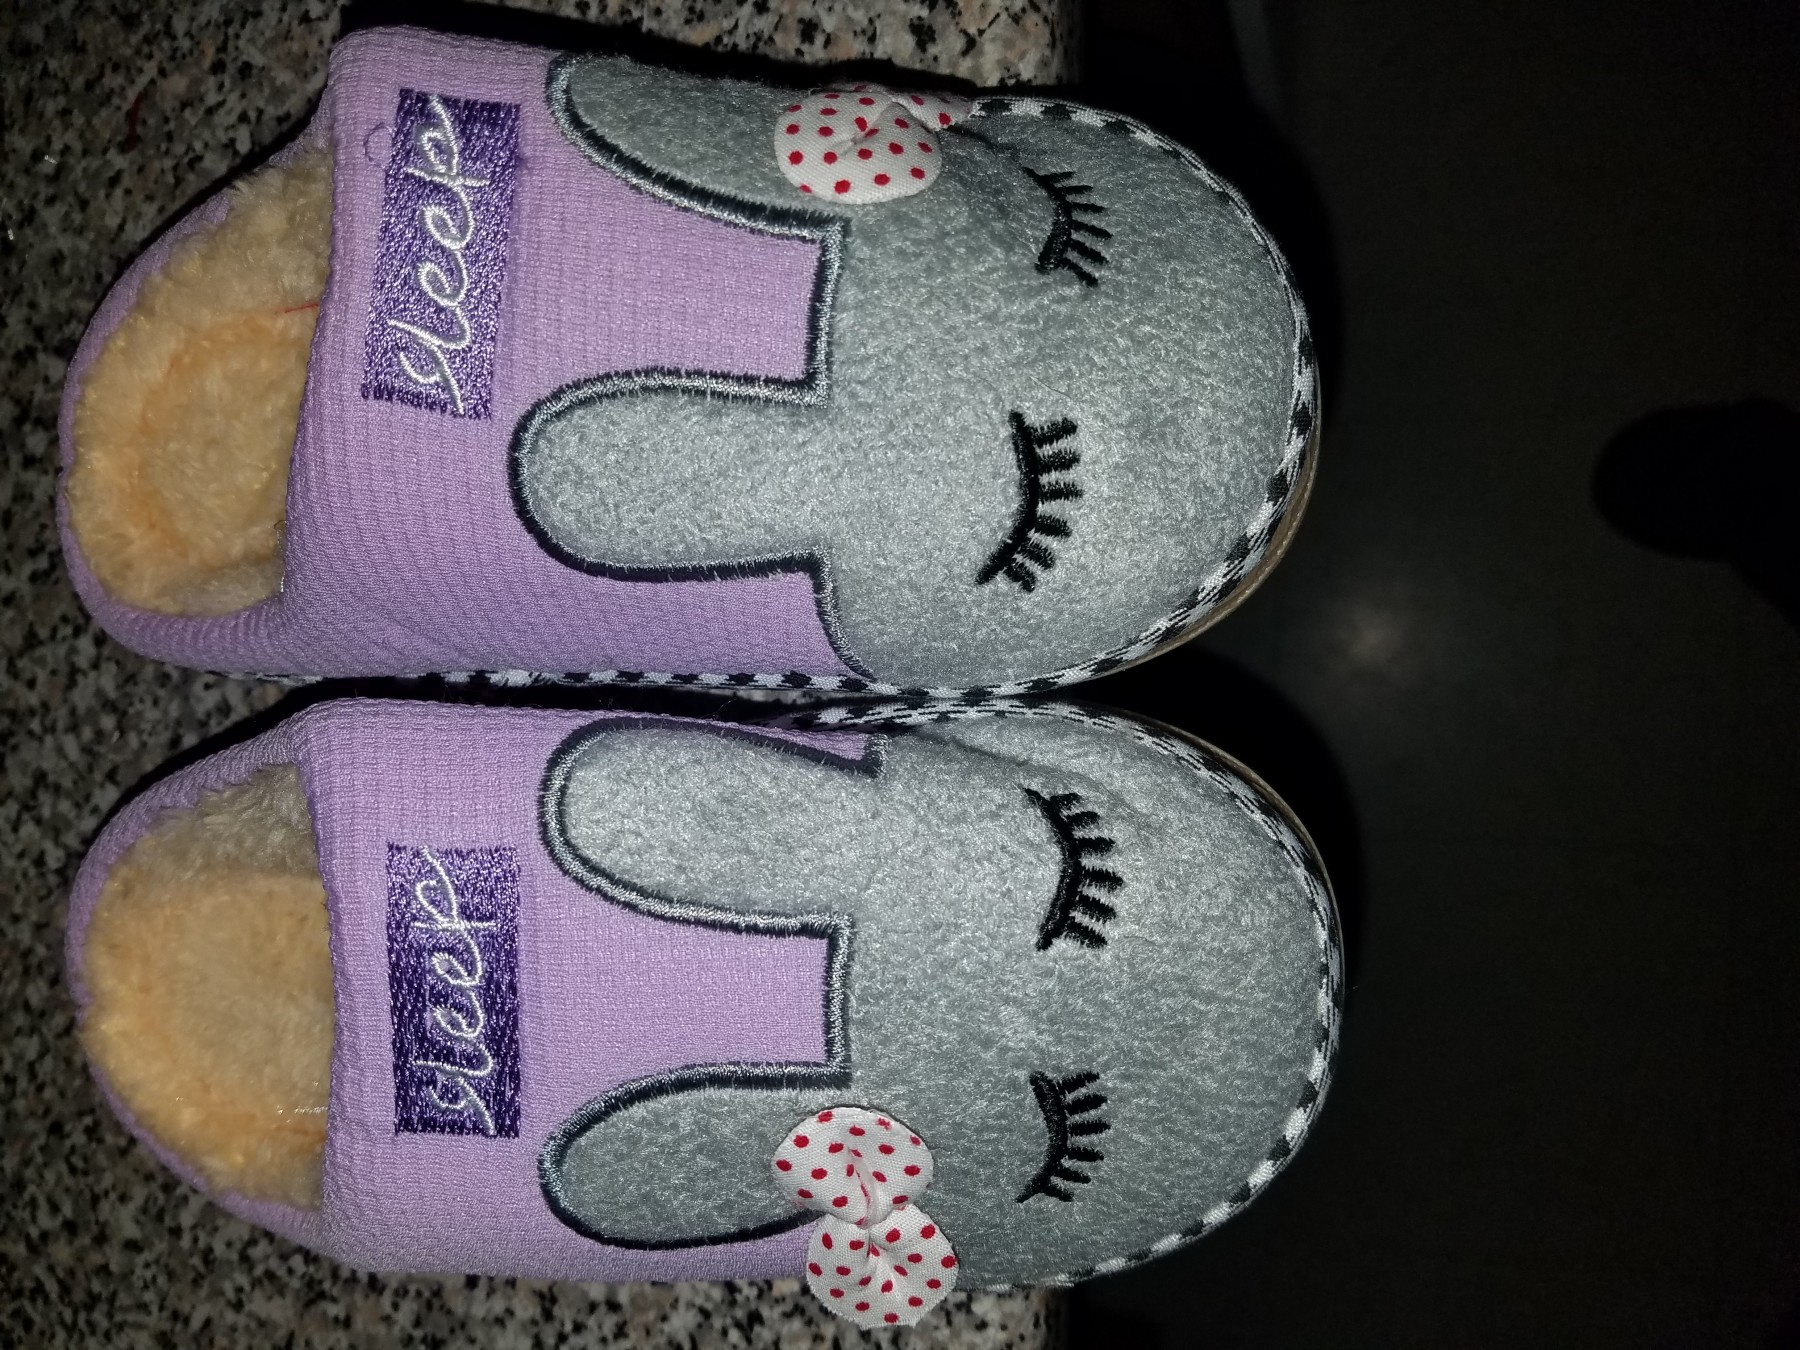 Good quality slippers, cute too!